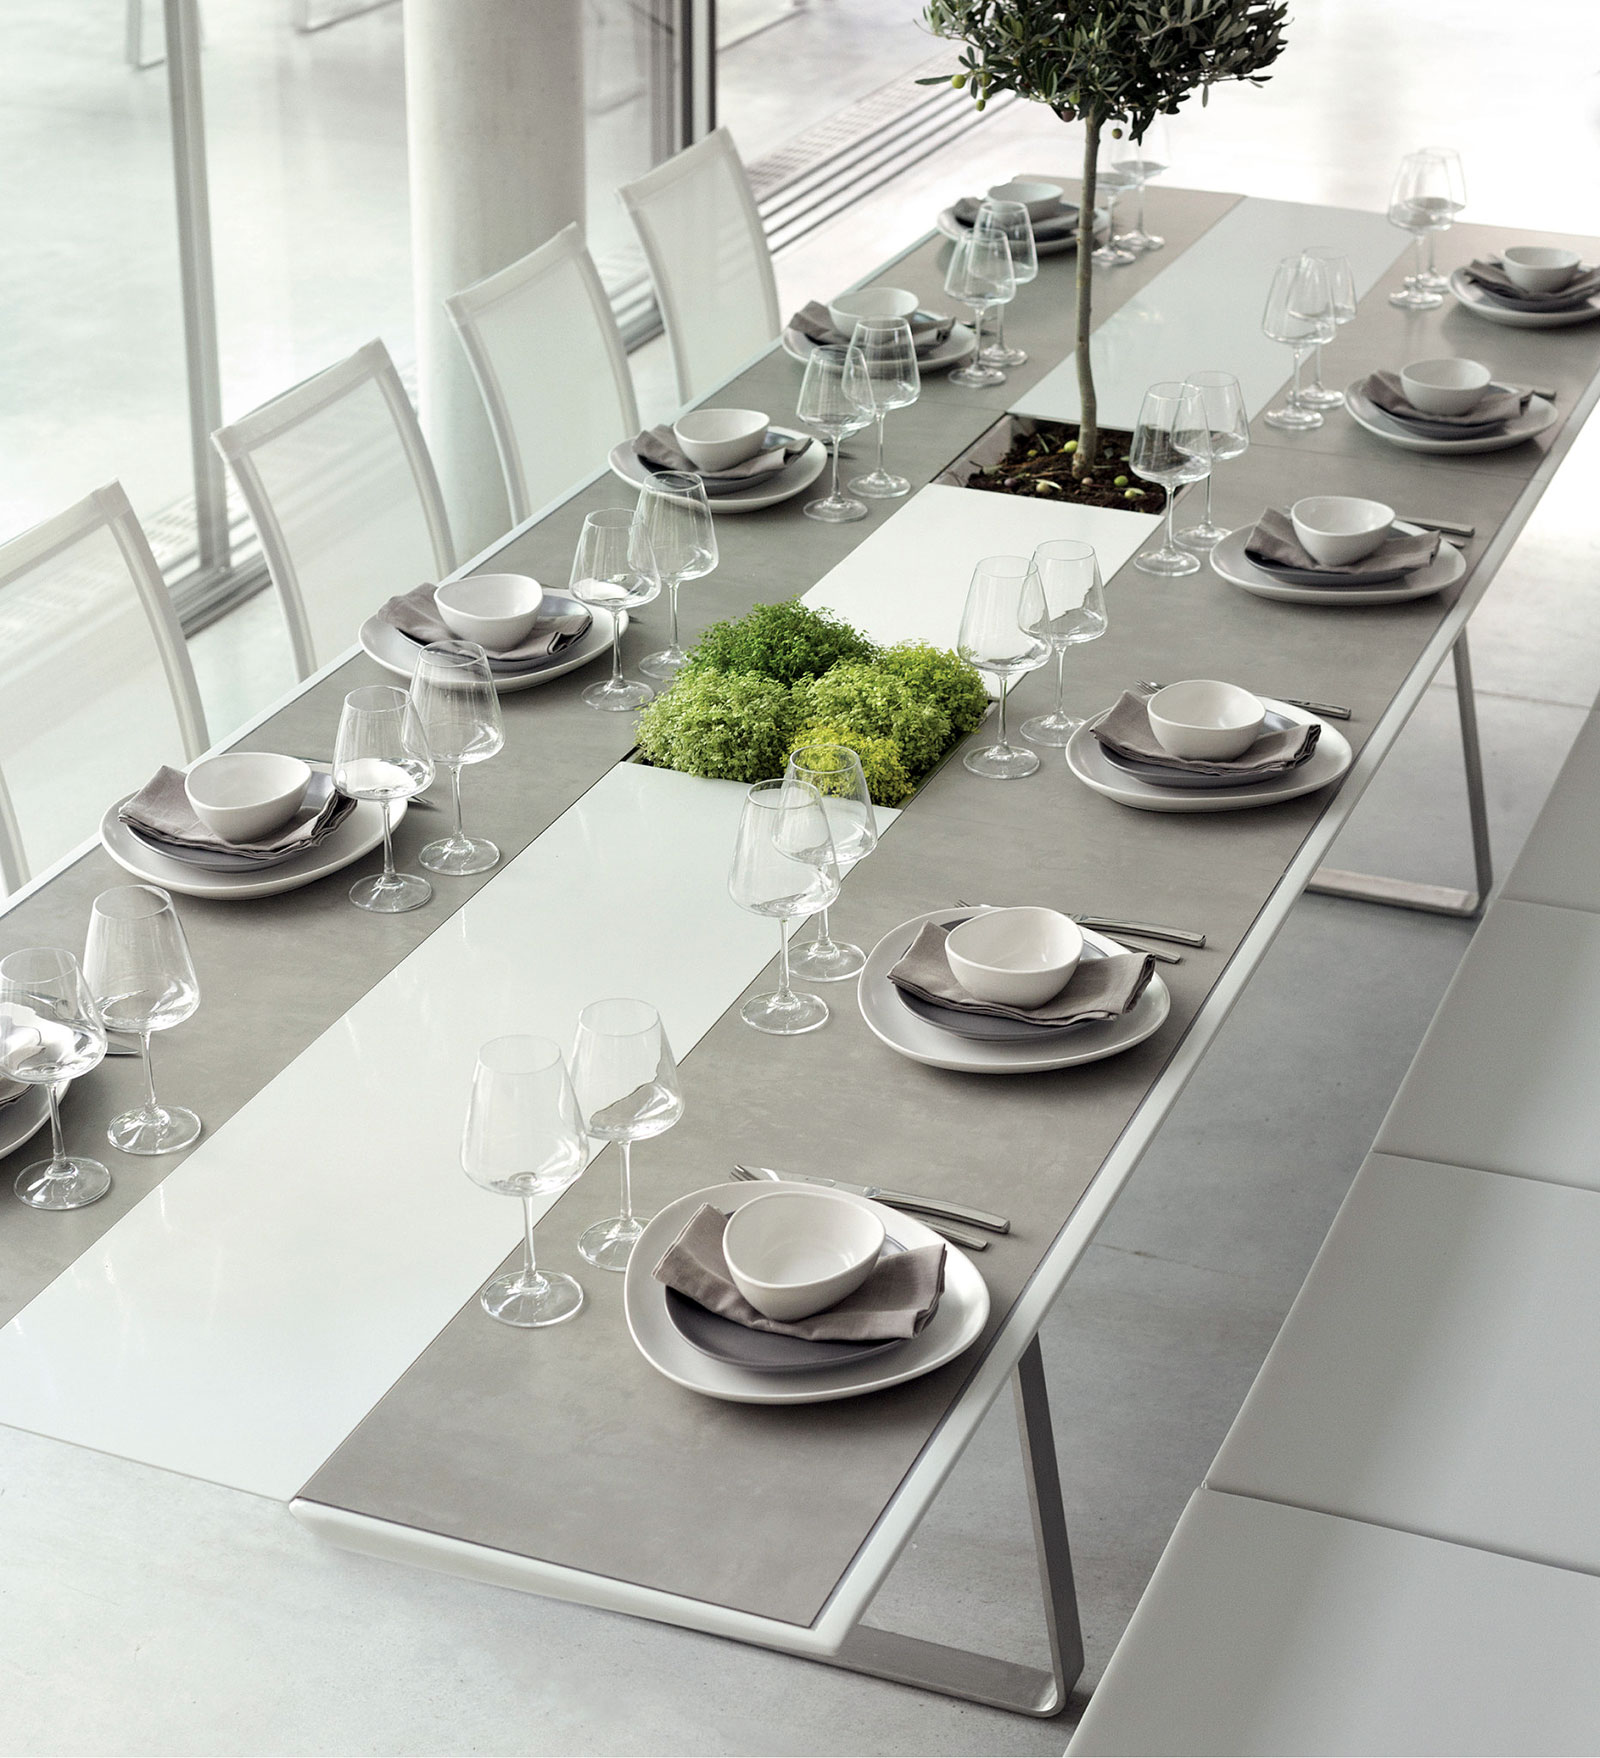 12 seater dining table